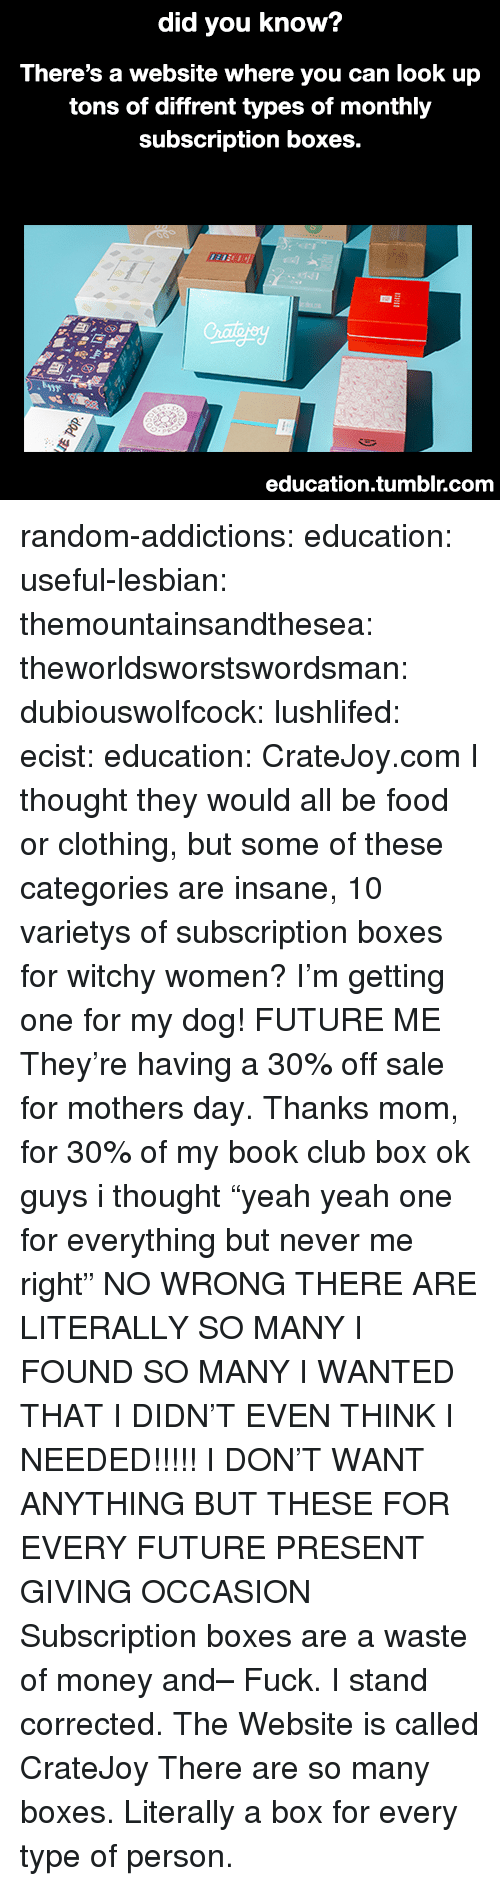 "Club, Food, and Future: did you know?  There's a website where you can look up  tons of diffrent types of monthly  subscription boxes.  1/  Crailajey  education.tumblr.com random-addictions:  education:  useful-lesbian:  themountainsandthesea:  theworldsworstswordsman:  dubiouswolfcock:  lushlifed:  ecist:  education: CrateJoy.com   I thought they would all be food or clothing, but some of these categories are insane, 10 varietys of subscription boxes for witchy women?    I'm getting one for my dog!   FUTURE ME  They're having a 30% off sale for mothers day. Thanks mom, for 30% of my book club box  ok guys i thought ""yeah yeah one for everything but never me right"" NO WRONG THERE ARE LITERALLY SO MANY I FOUND SO MANY I WANTED THAT I DIDN'T EVEN THINK I NEEDED!!!!! I DON'T WANT ANYTHING BUT THESE FOR EVERY FUTURE PRESENT GIVING OCCASION    Subscription boxes are a waste of money and– Fuck. I stand corrected.  The Website is called CrateJoy   There are so many boxes. Literally a box for every type of person."